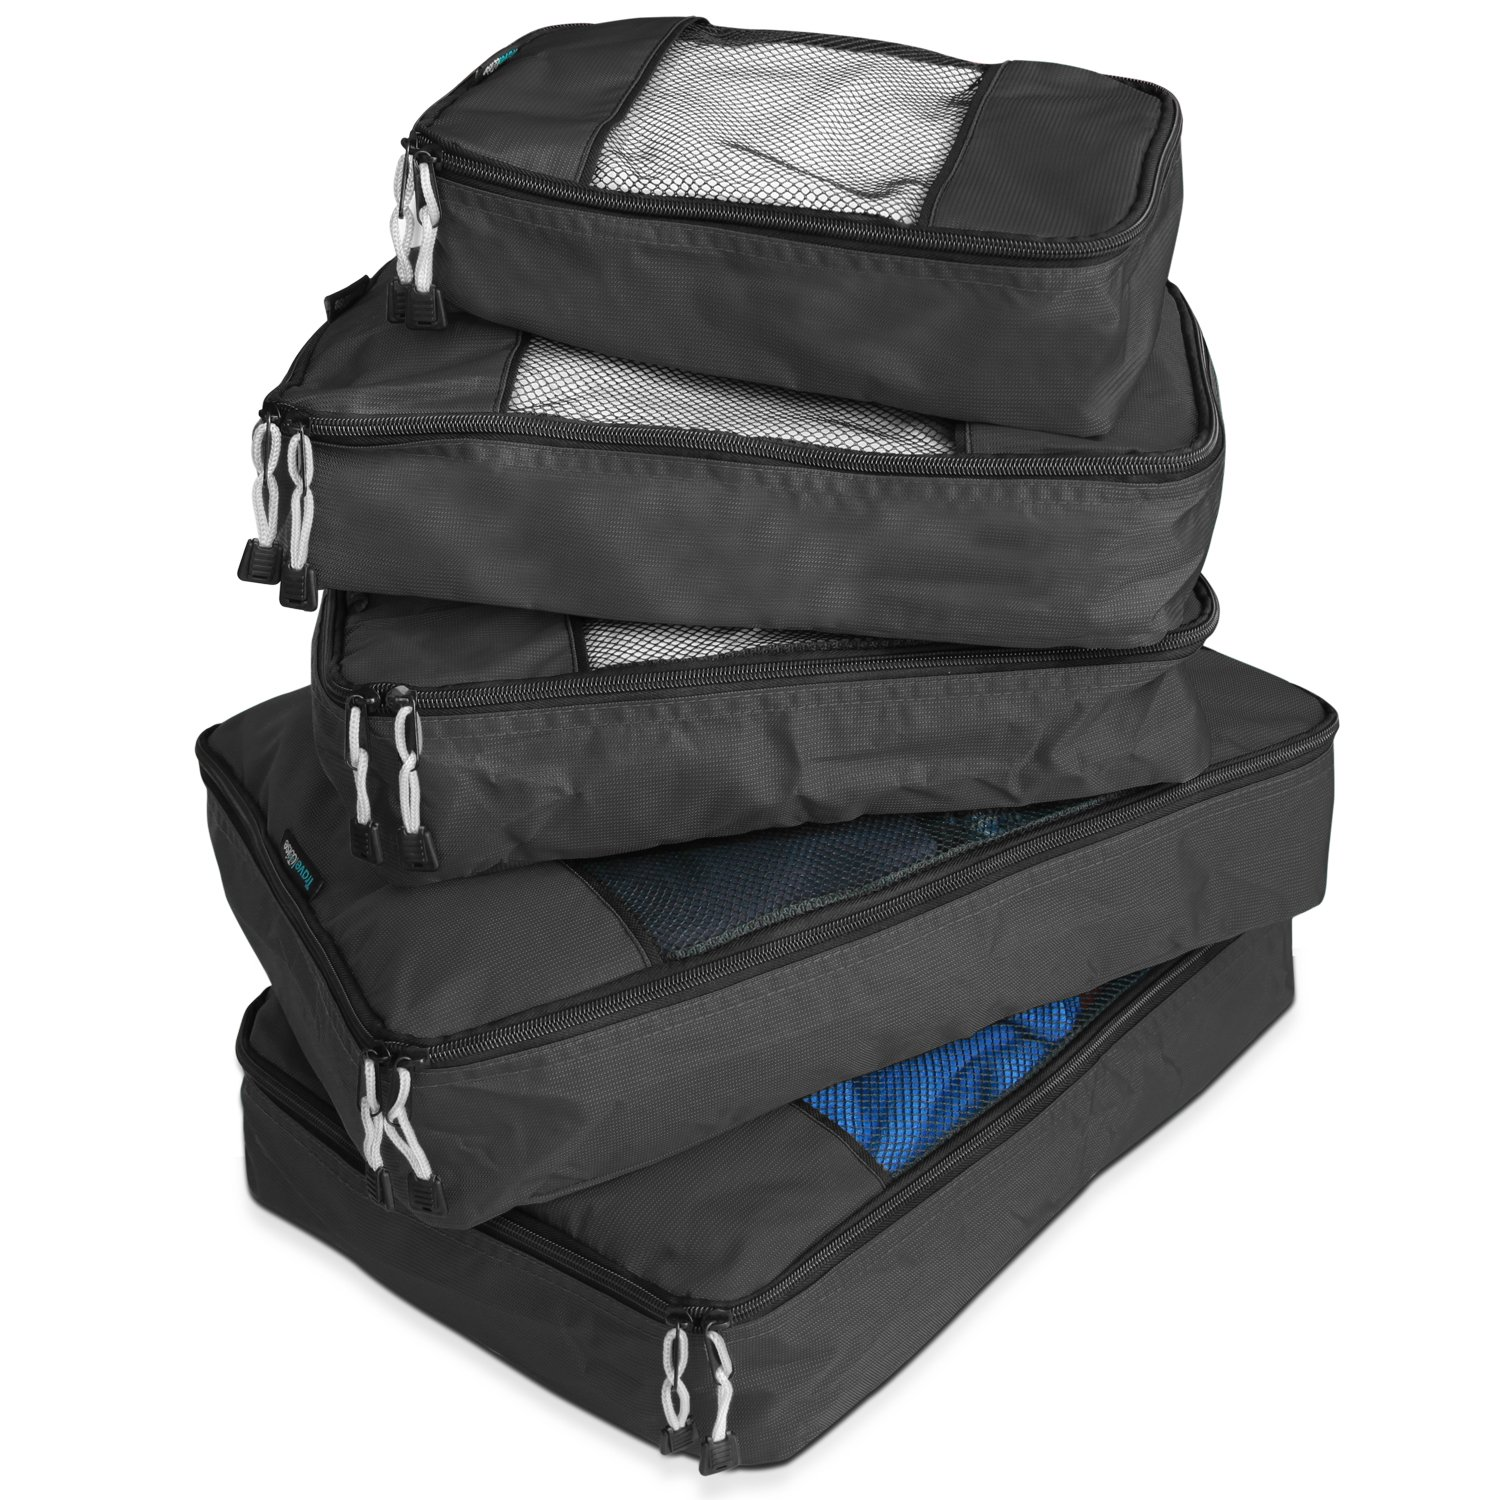 TravelWise Packing Cube System - Durable 5 Piece Weekender Plus Set (Black)